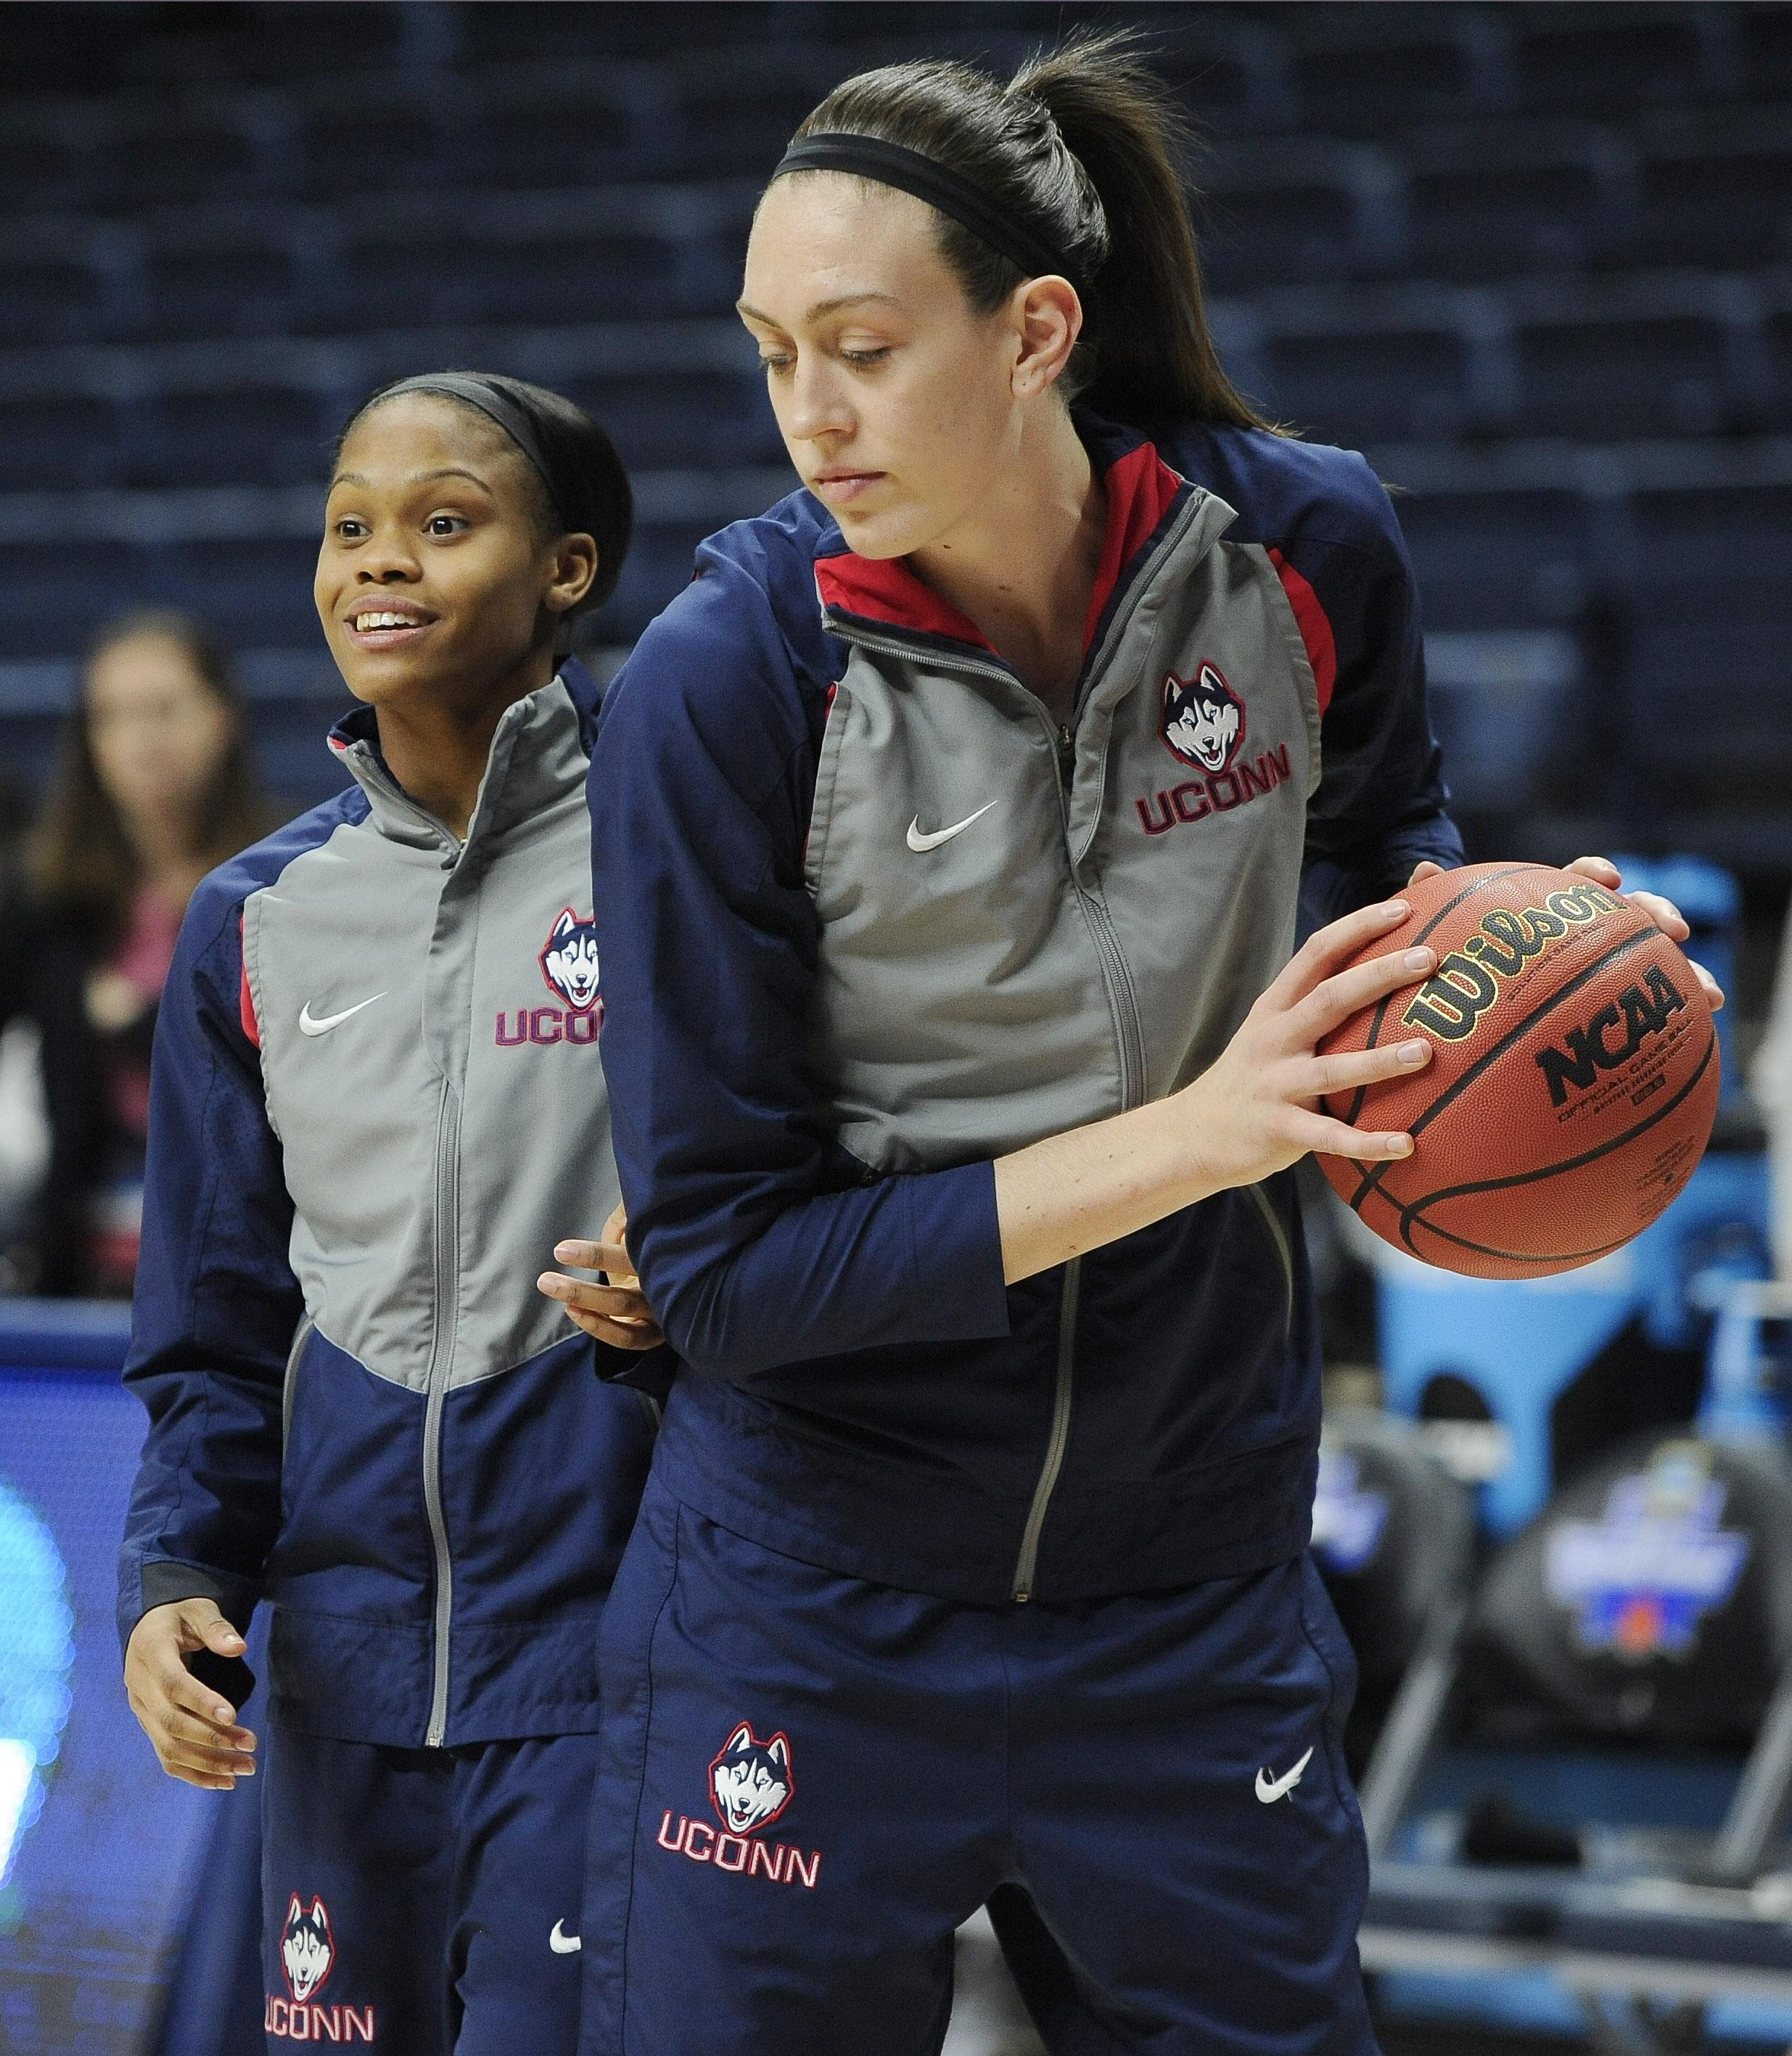 Breanna Stewart, Moriah Jefferson became highest-scoring UConn classmates in postseason history - Breanna Stewart was the unquestioned No. 1 player in the country heading into college, while Moriah Jefferson was rated as the second-best player and top guard. When they both arrived at UConn, there was a feeling that some special things were in their future. Read more: http://www.norwichbulletin.com/sports/20160323/breanna-stewart-moriah-jefferson-became-highest-scoring-uconn-classmates-in-postsea